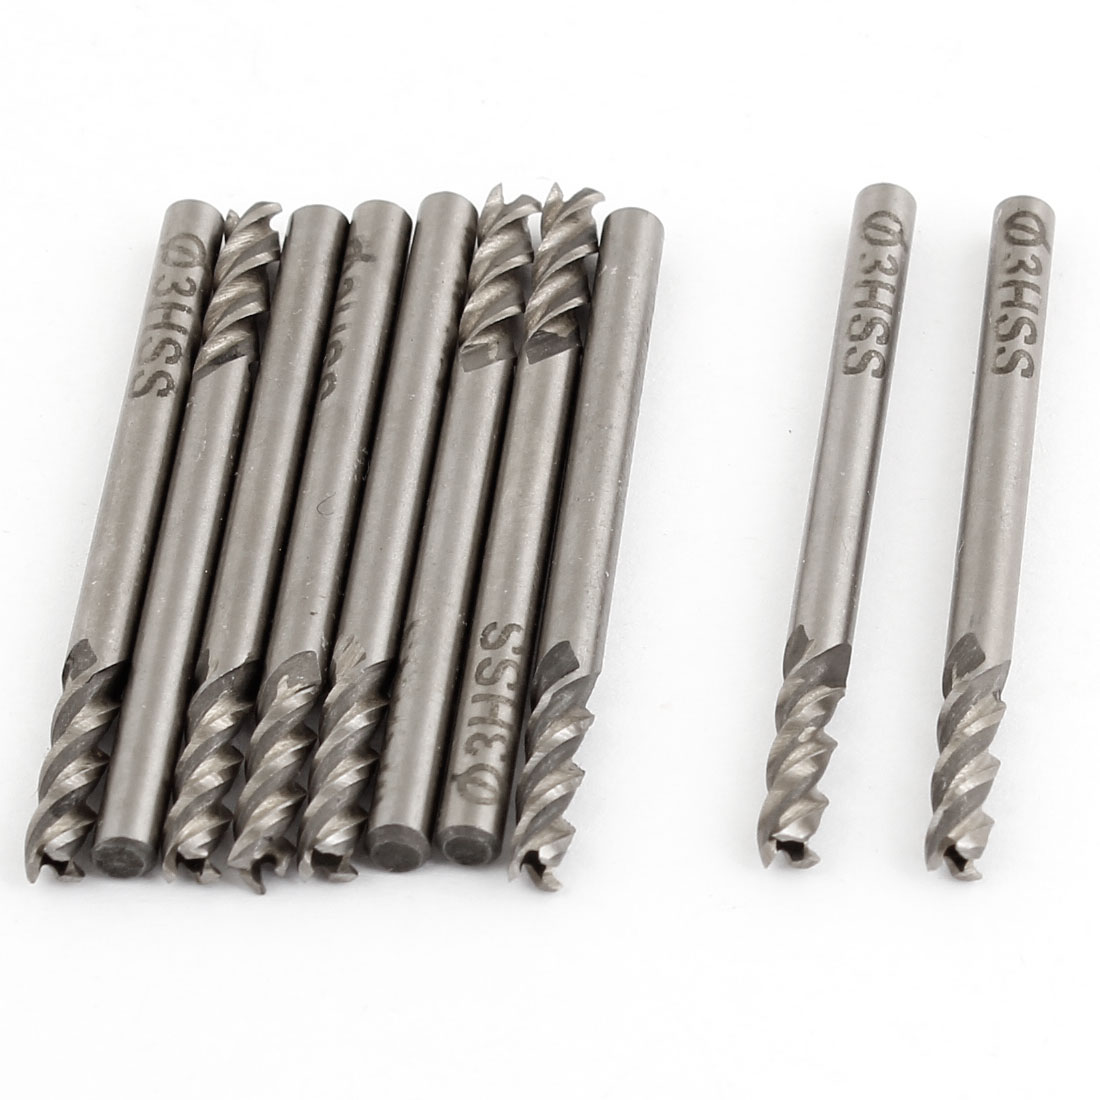 10 Pcs Helical Groove 3 Flutes 3mm Cutting Dia HSS Cutter End Mill